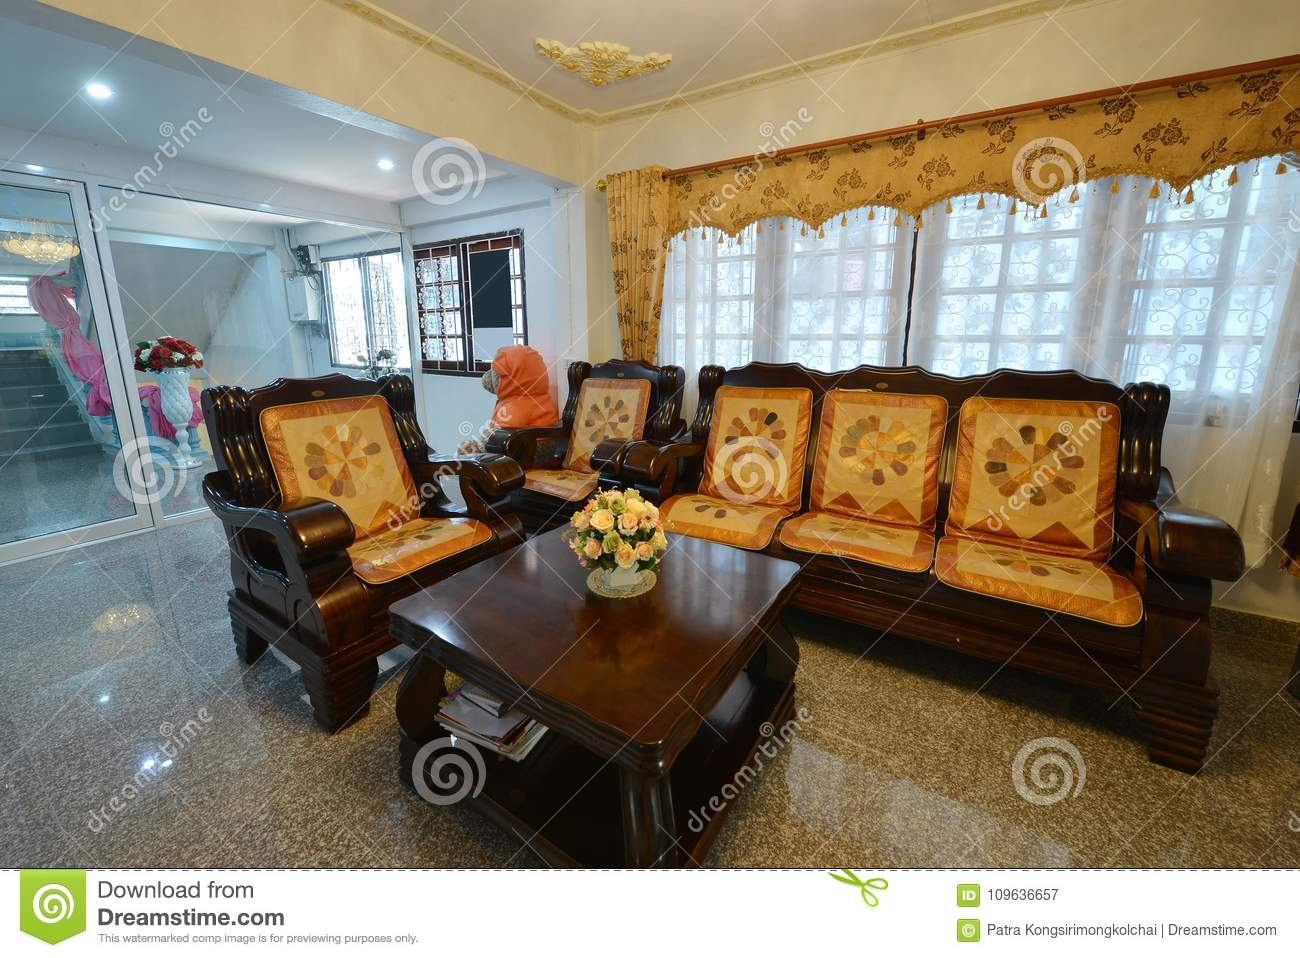 Elegant Oriental Classic Vintage Chinese Living Room, Interior D Stock  Image - Image of chair, apartment: 109636657